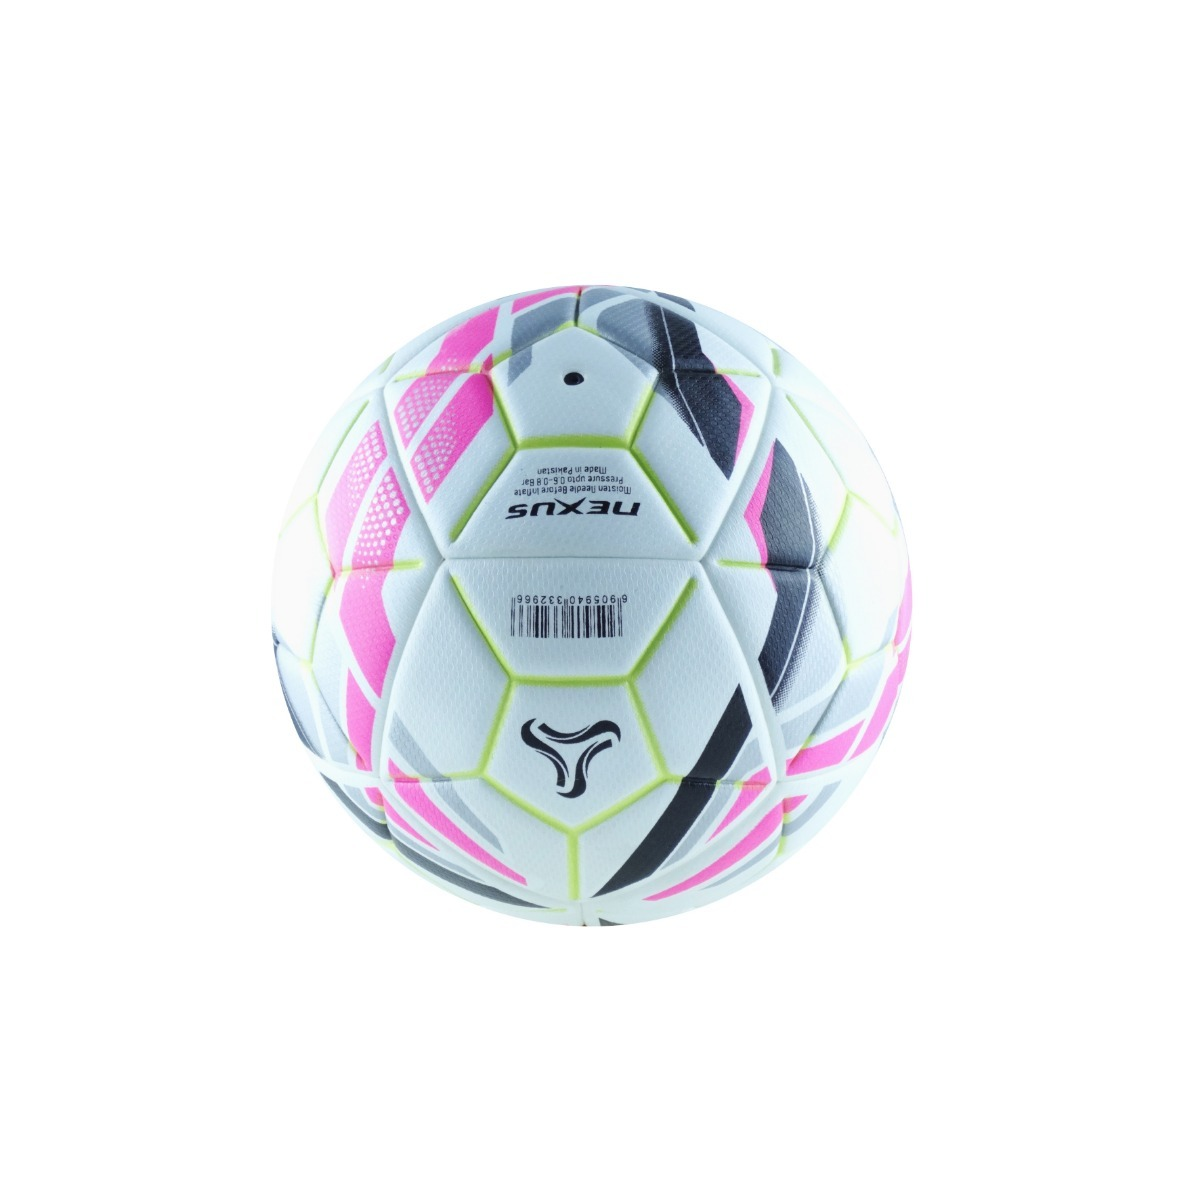 008143a07e3d3 Balon De Futbol Train Nexus N°5 -   19.990 en Mercado Libre